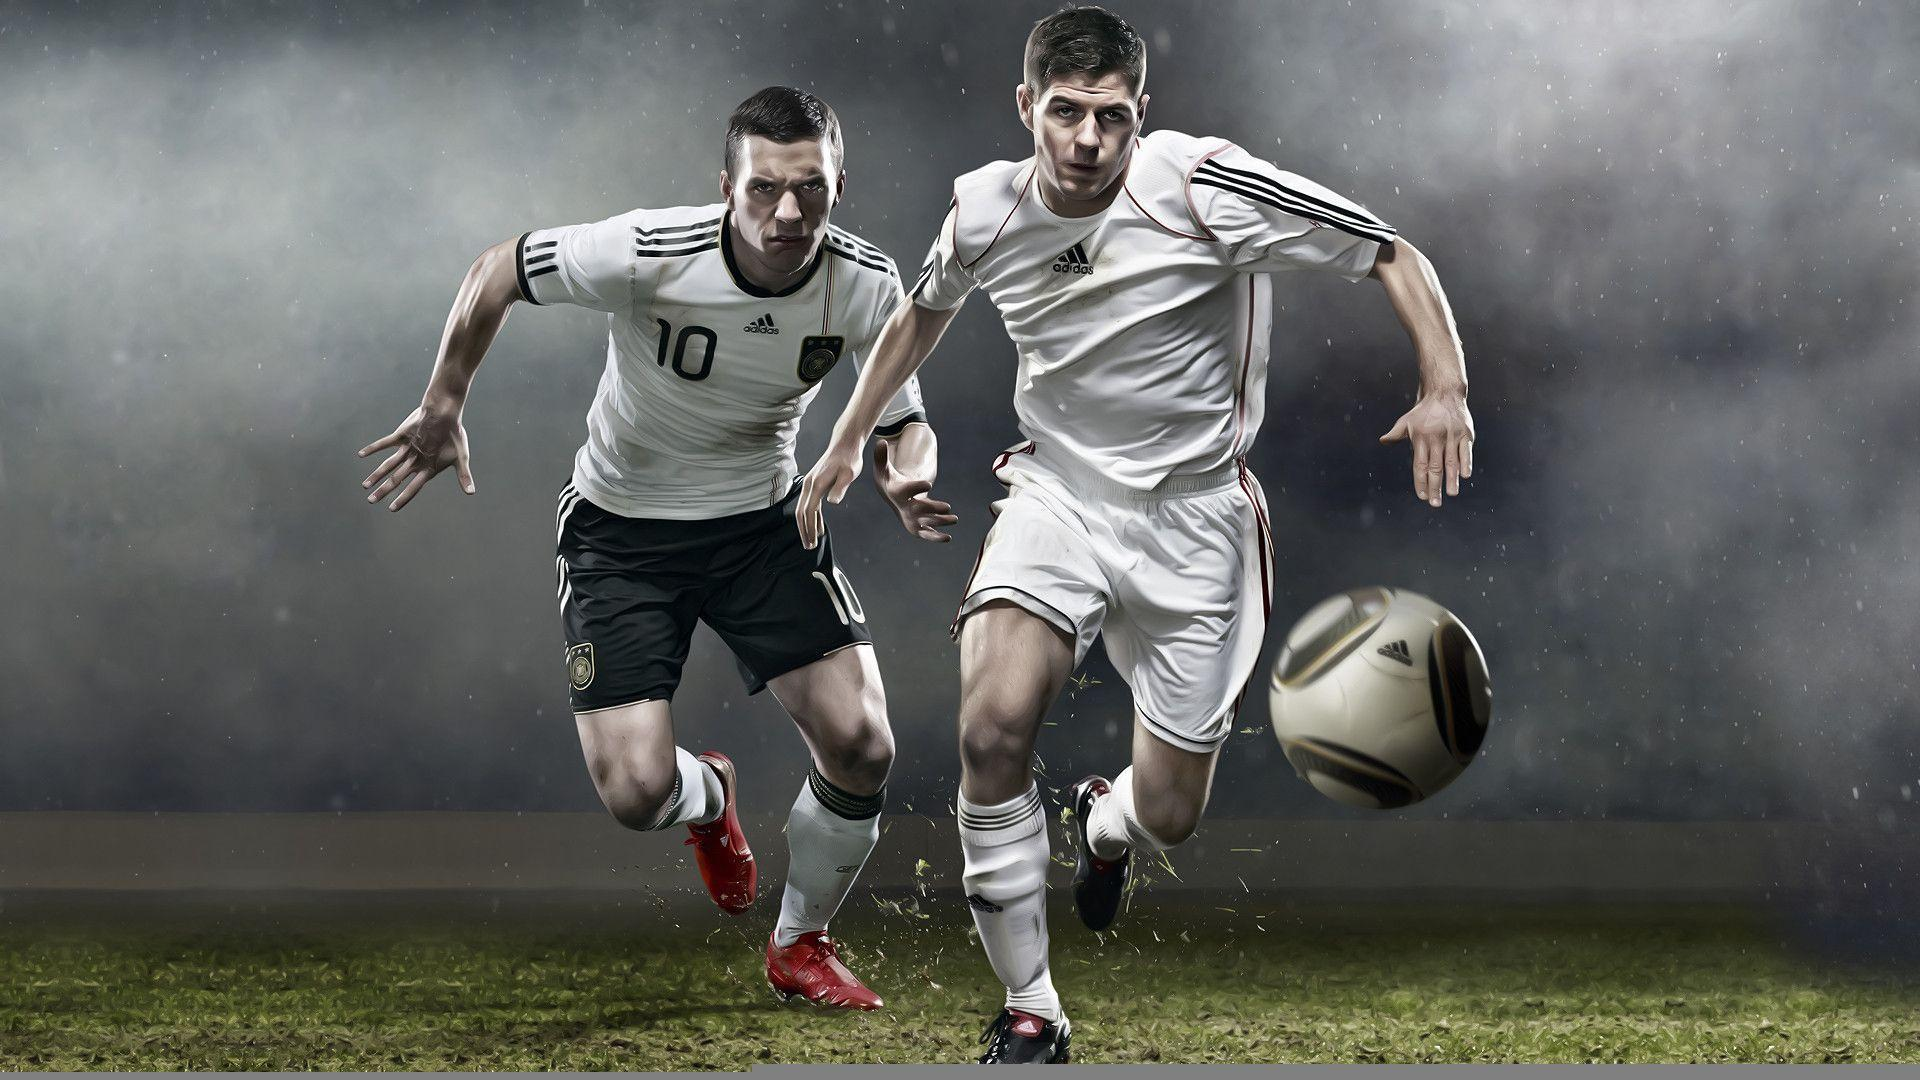 Adidas Soccer Wallpapers - Wallpaper Cave